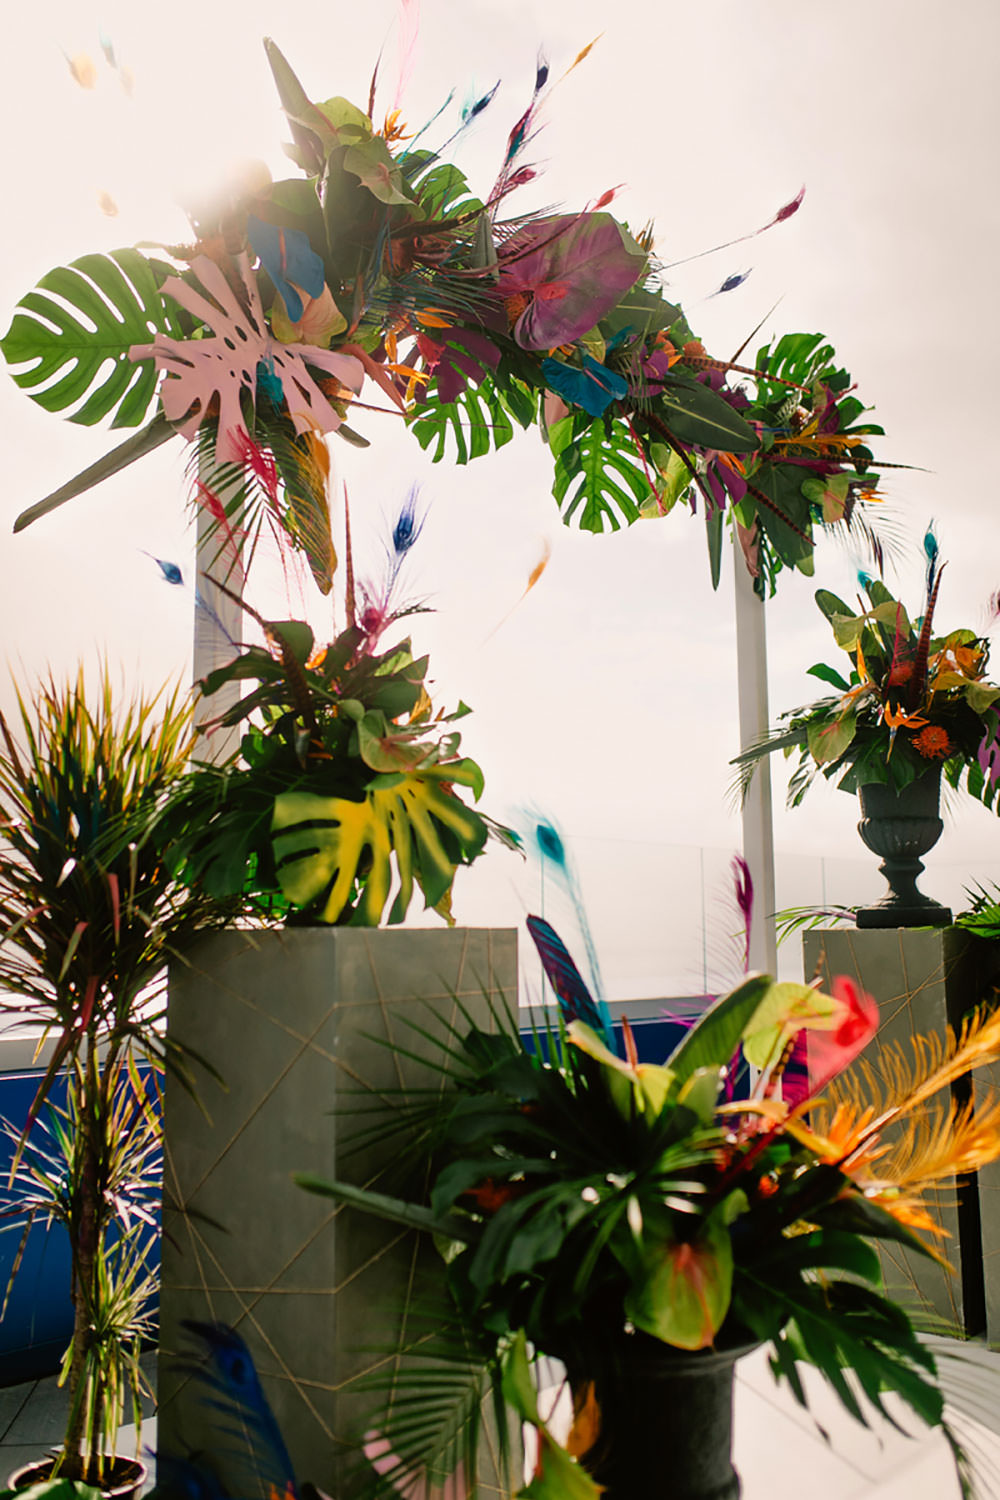 Colorful Destination Elopement Aisle Ceremony Arch Palm Leaves | Tropical Industrial Canary Islands Wedding Ideas Moana Photography